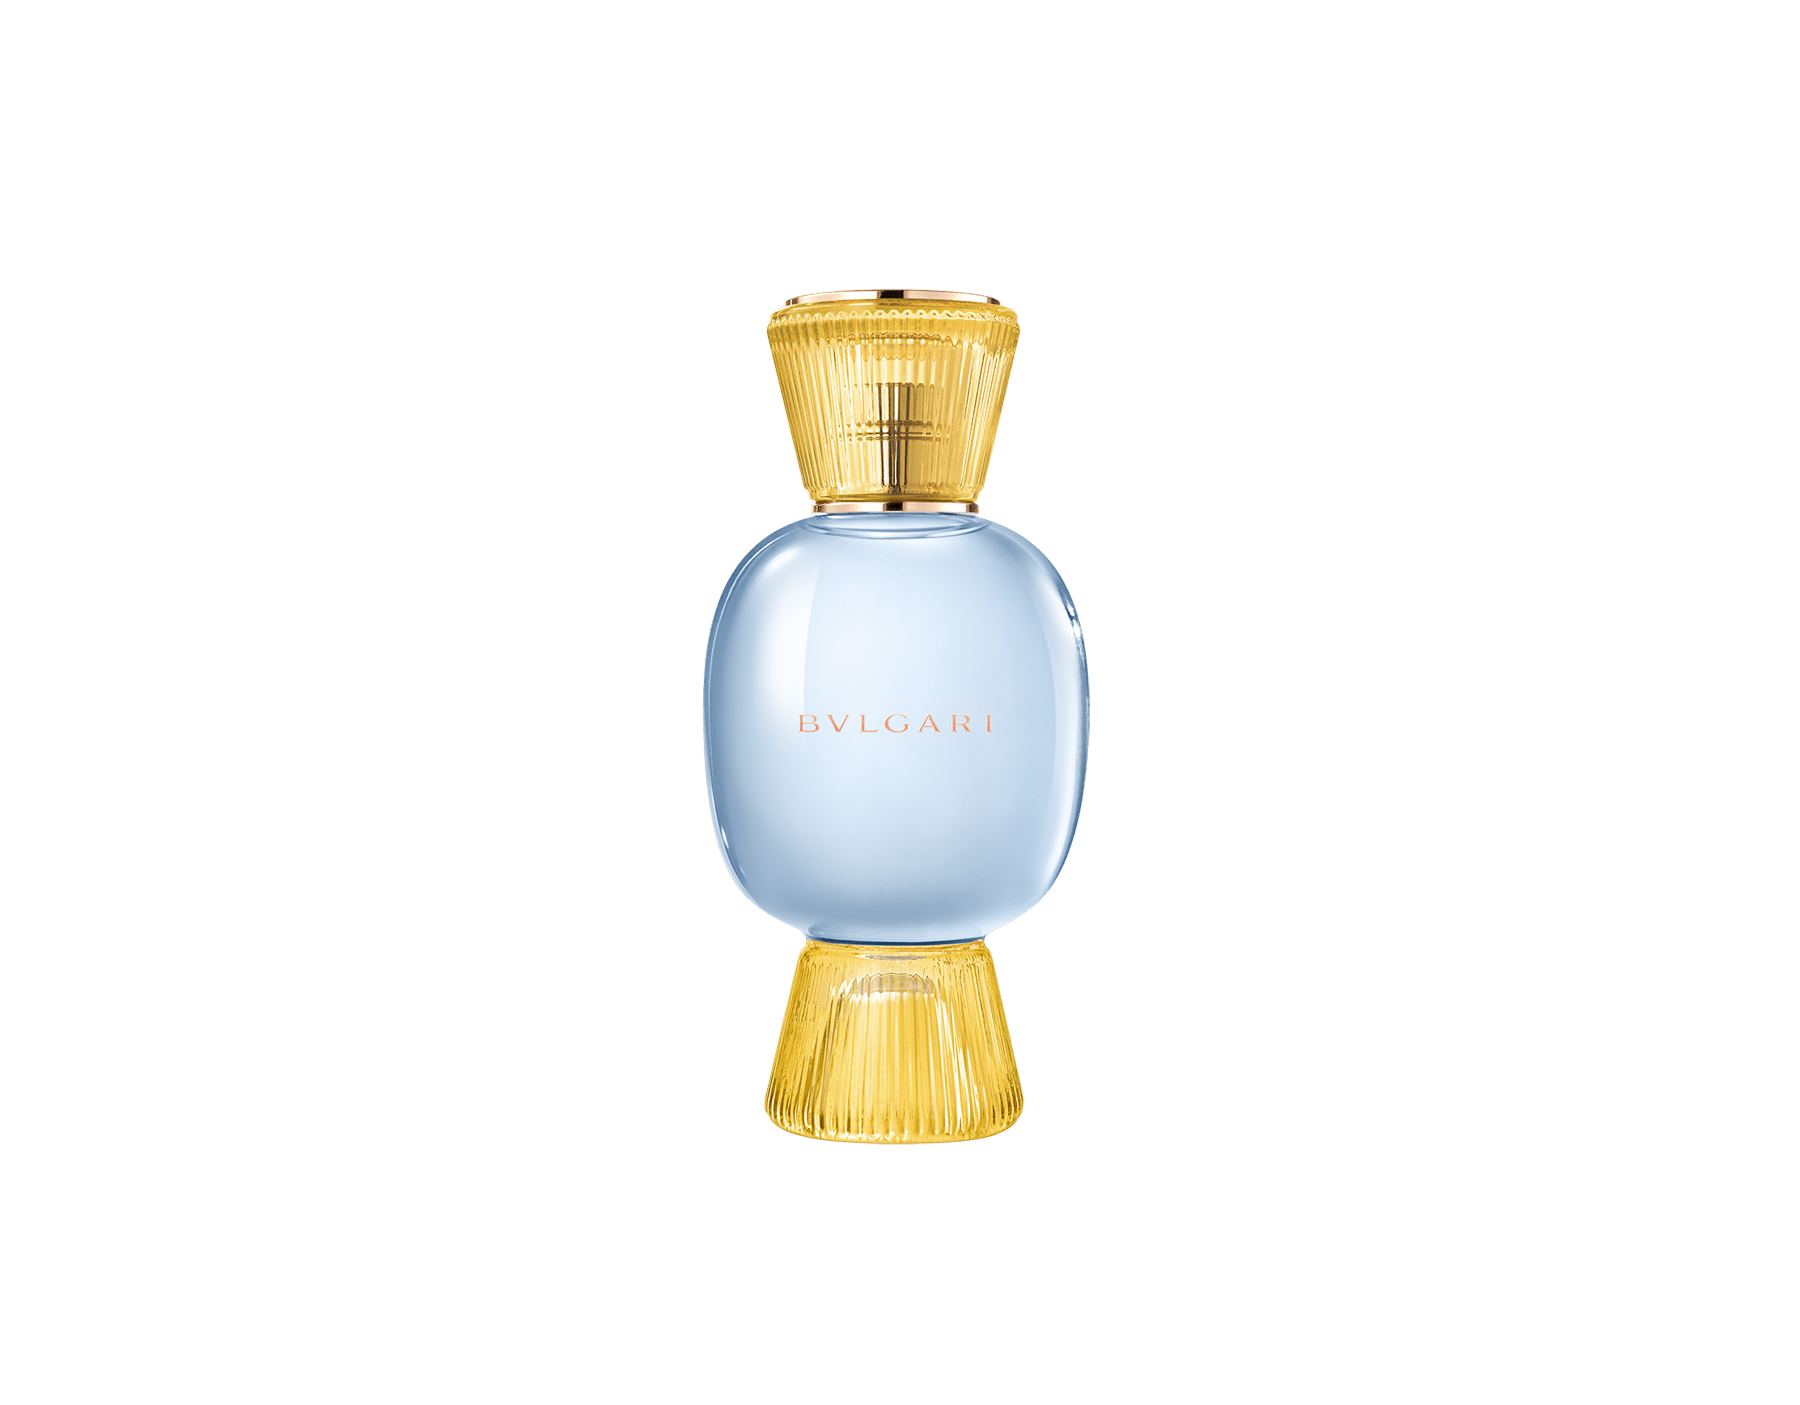 An exclusive perfume set, as bold and unique as you. The sparkling citrus Riva Solare Allegra Eau de Parfum blends with the joyful freshness of the Magnifying Bergamot Essence, creating an irresistible personalised women's perfume. Perfume-Set-Riva-Solare-Eau-de-Parfum-and-Bergamot-Magnifying image 2